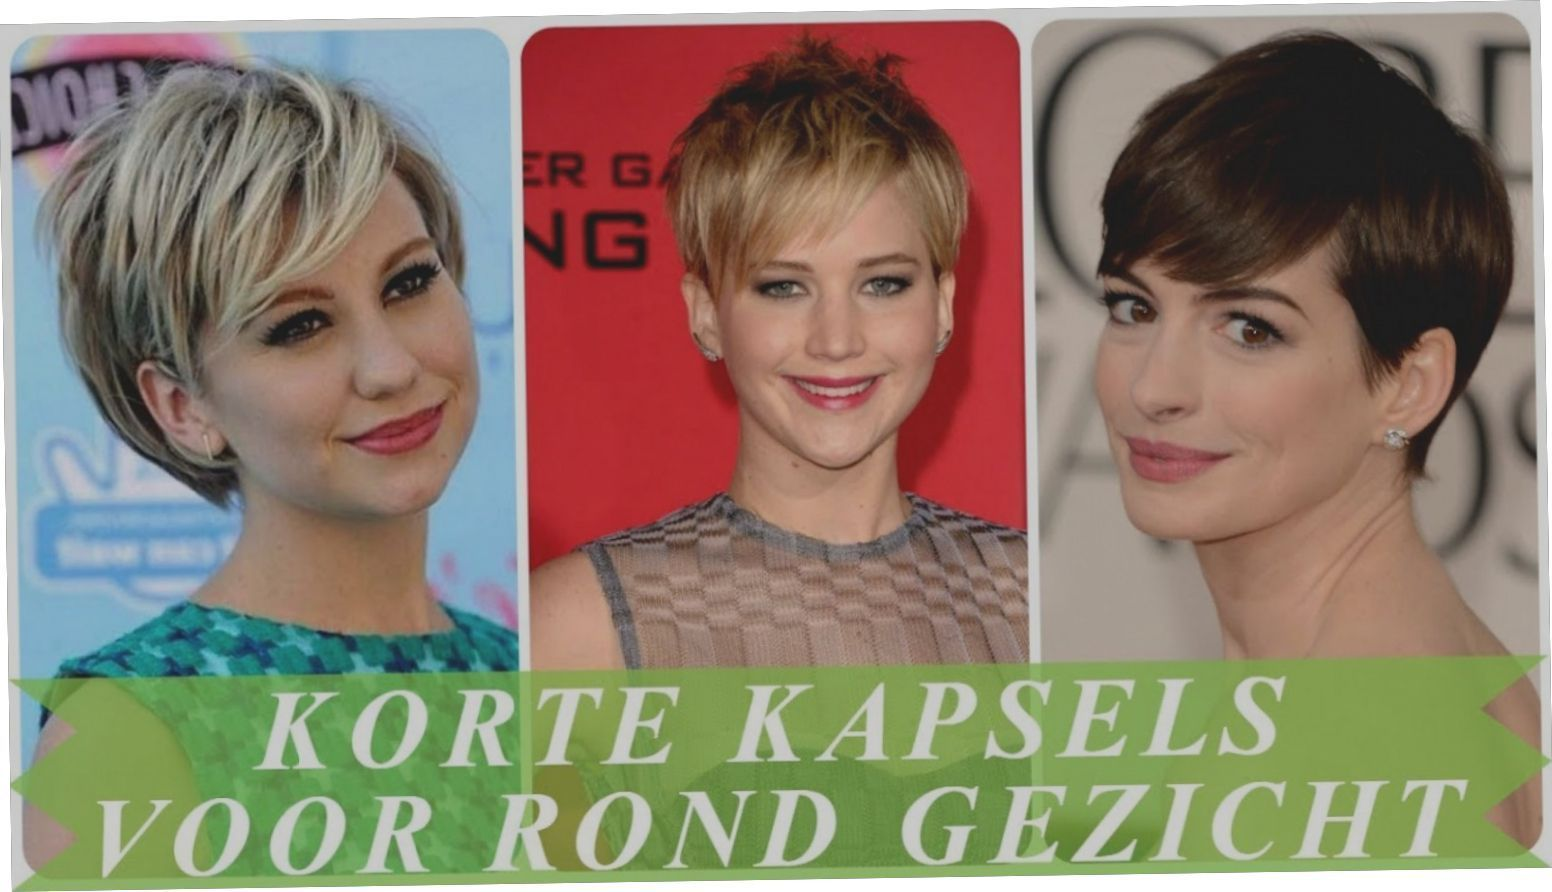 Nieuw Korte Kapsels Smal Gezicht Nieuw Korte Kapsels Smal Gezicht Nieuw Korte Kapsels Sma Womens Hairstyles New Haircuts Haircut And Color